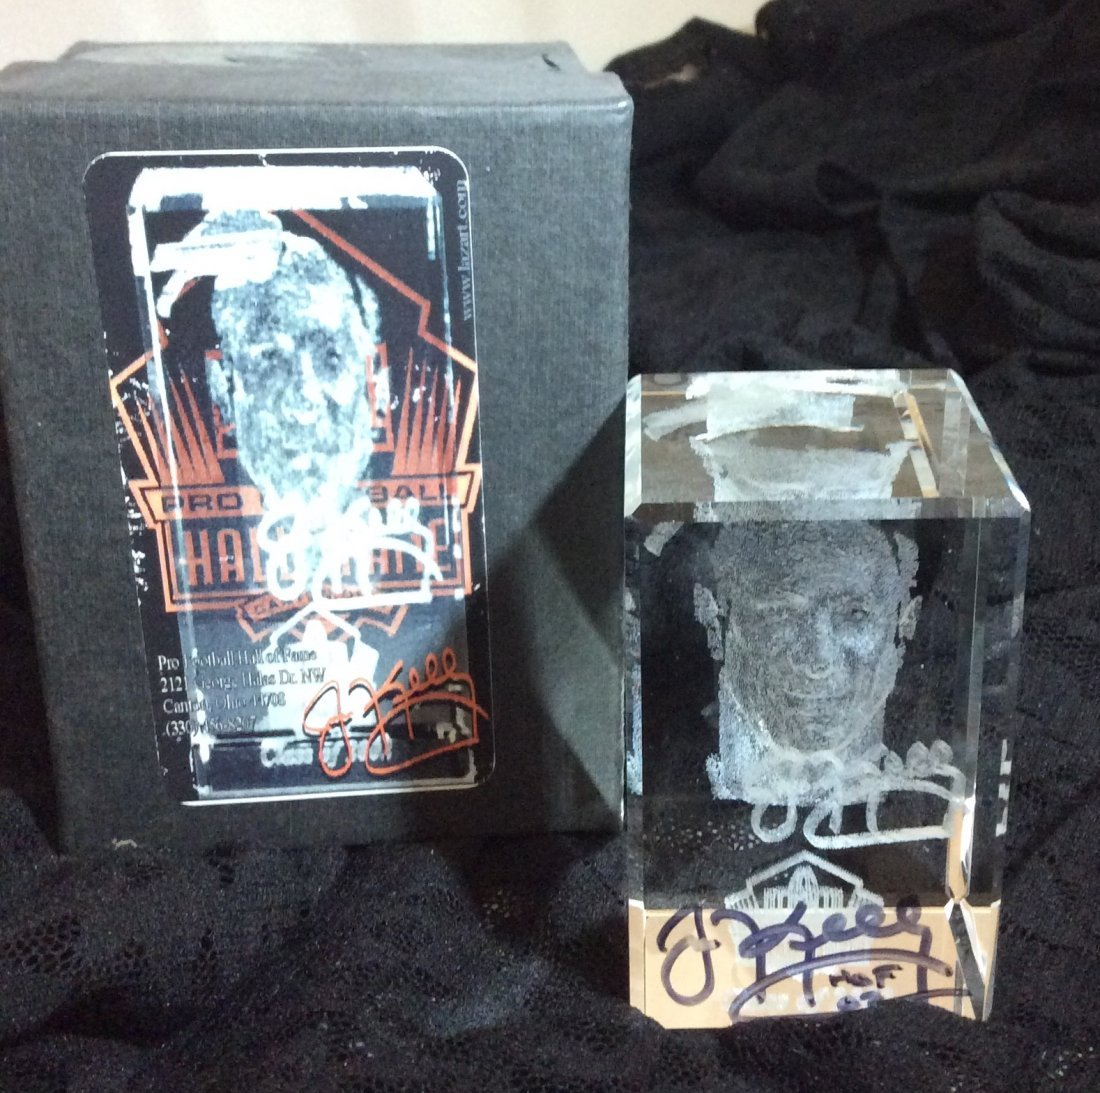 Jim Kelly Crystal Bust from Hall Of Fame Autographed